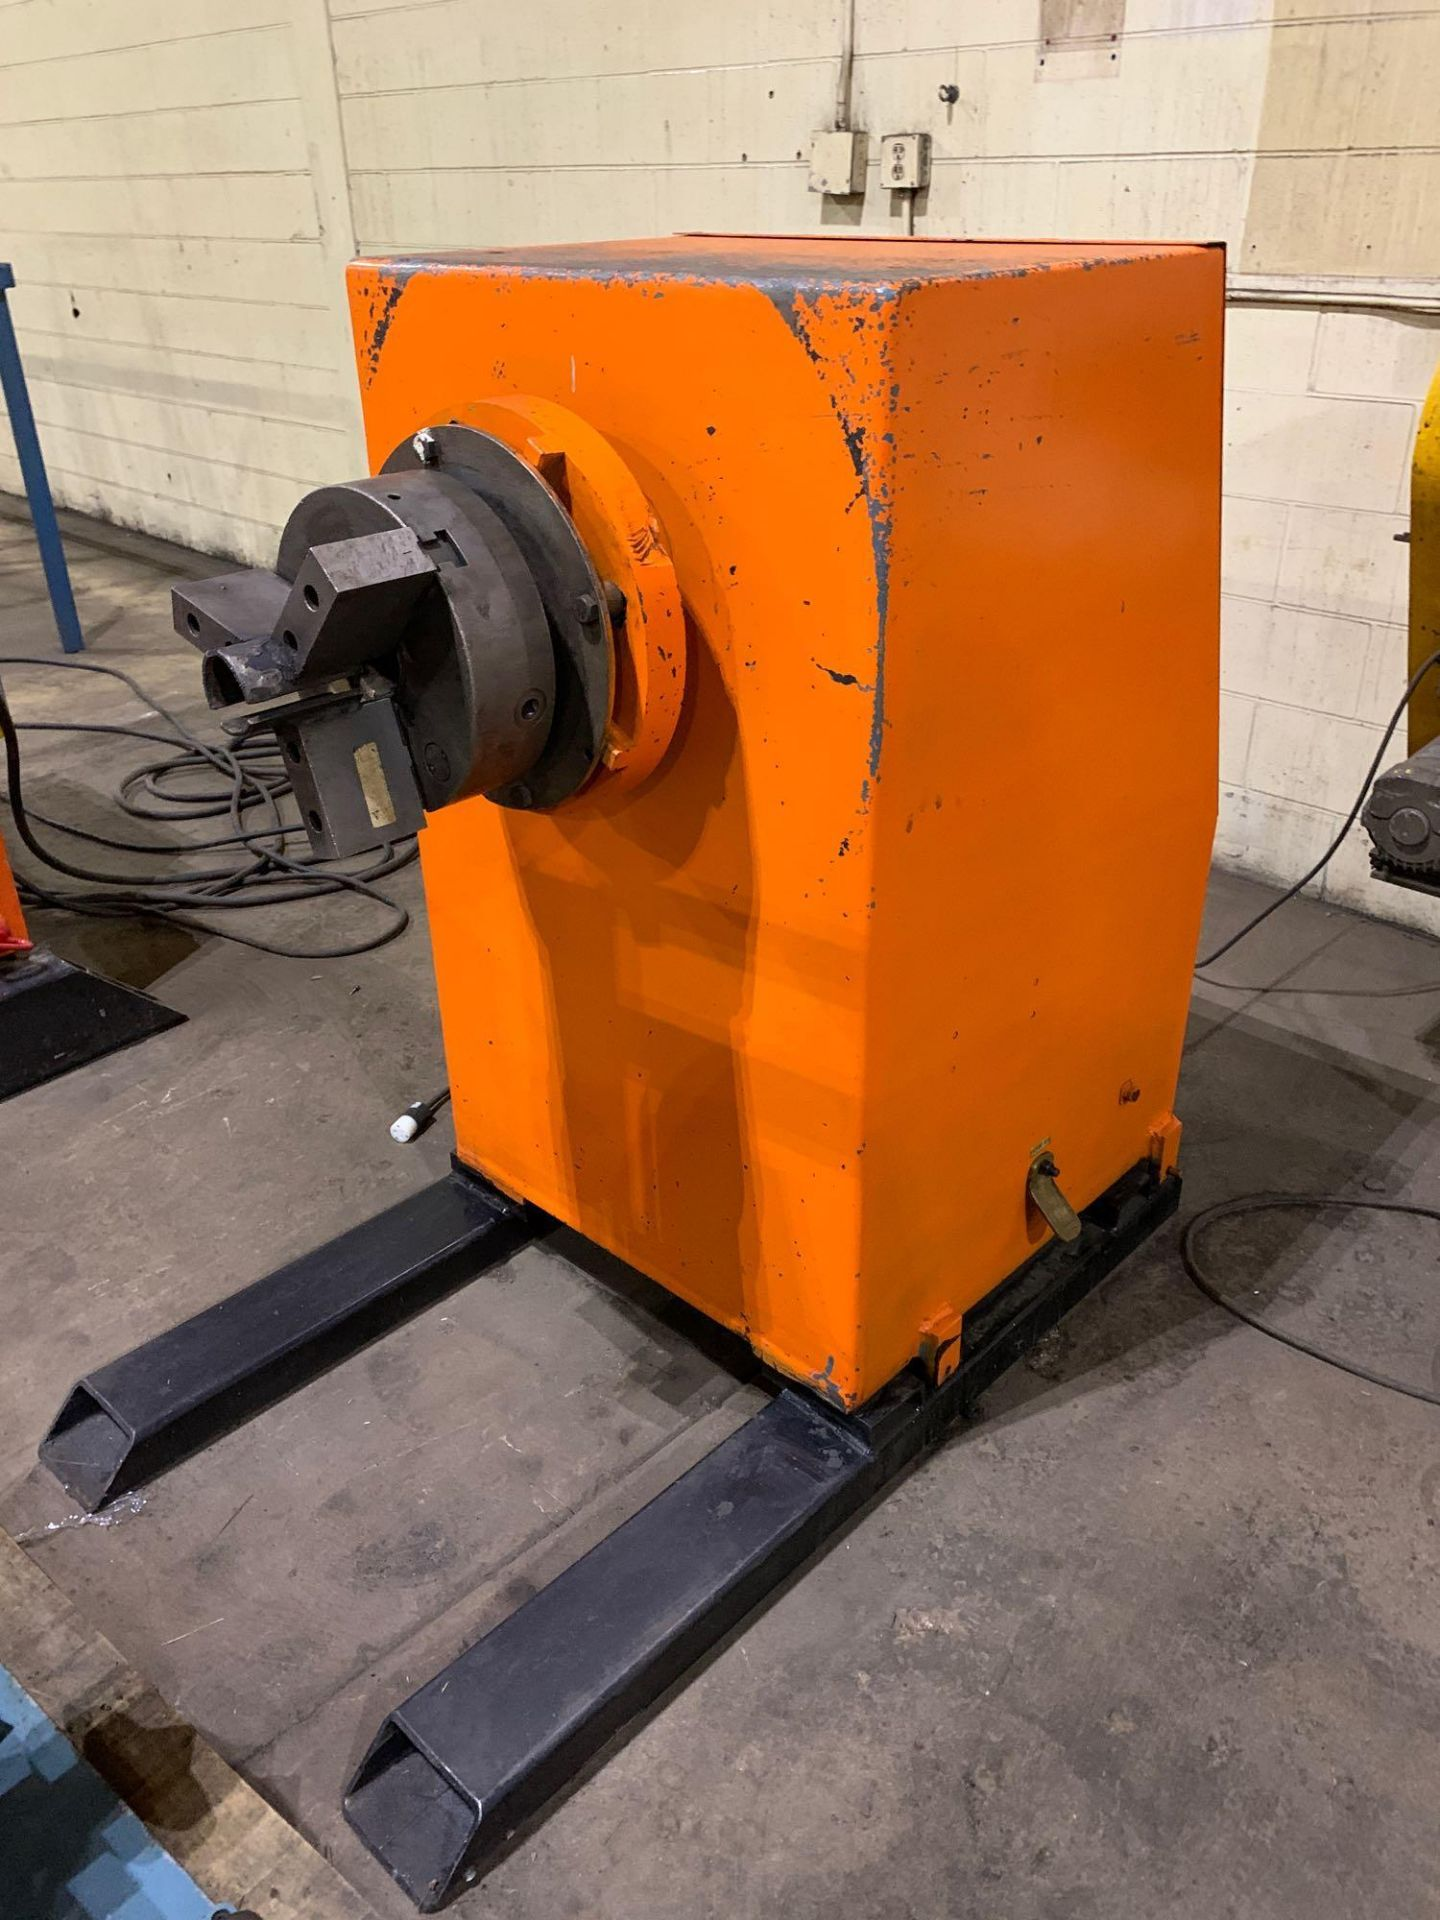 Jetline Welding Positioner Model CU5-216 Serial Number: 07625 Pipe Weld Positioner with Tail Stock I - Image 9 of 15